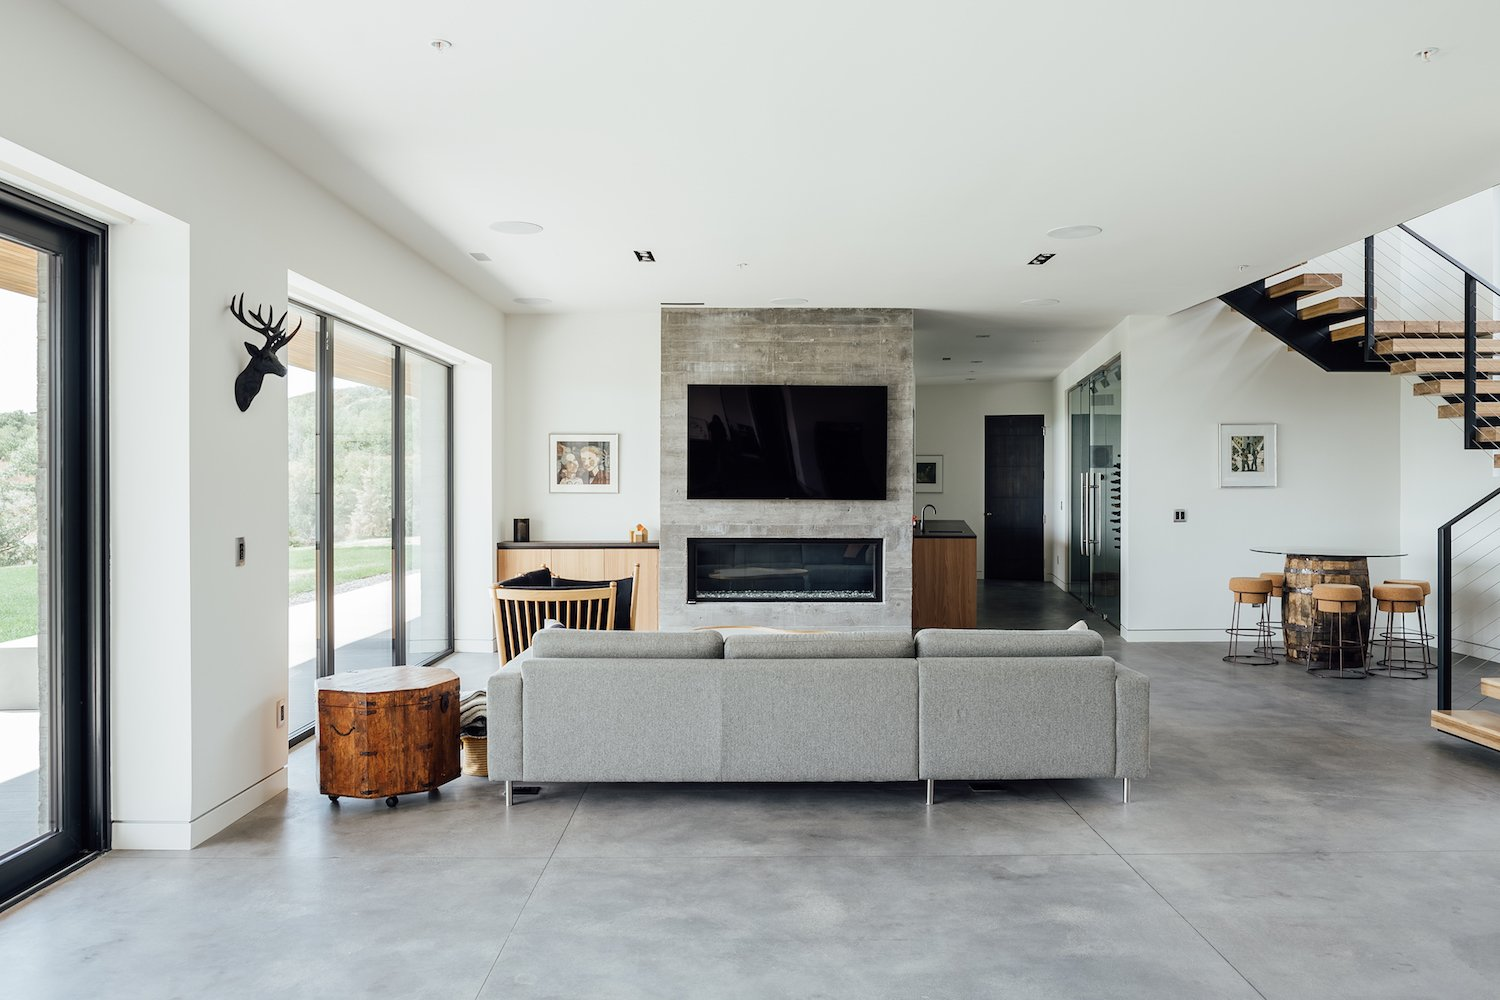 Living Room, Concrete Floor, Ceiling Lighting, Sofa, Recessed Lighting, Stools, Ribbon Fireplace, Chair, Table, Bar, Storage, and End Tables The lower level also features has a board-formed concrete fireplace.   Photo 13 of 14 in An Interior Designer's Utah Abode Blends Mountain Living With Scandinavian Style